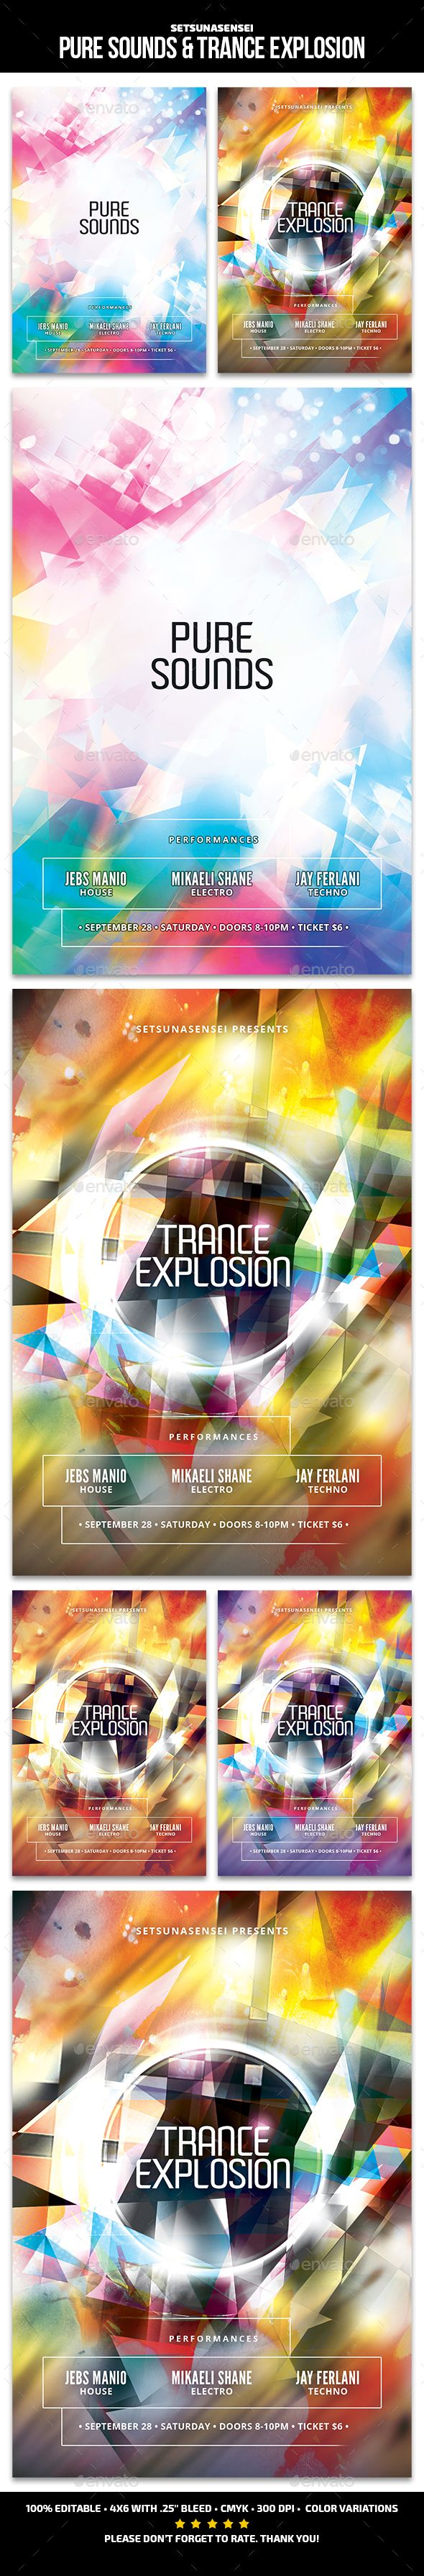 Pure Sounds & Trance Explosion Club Flyer